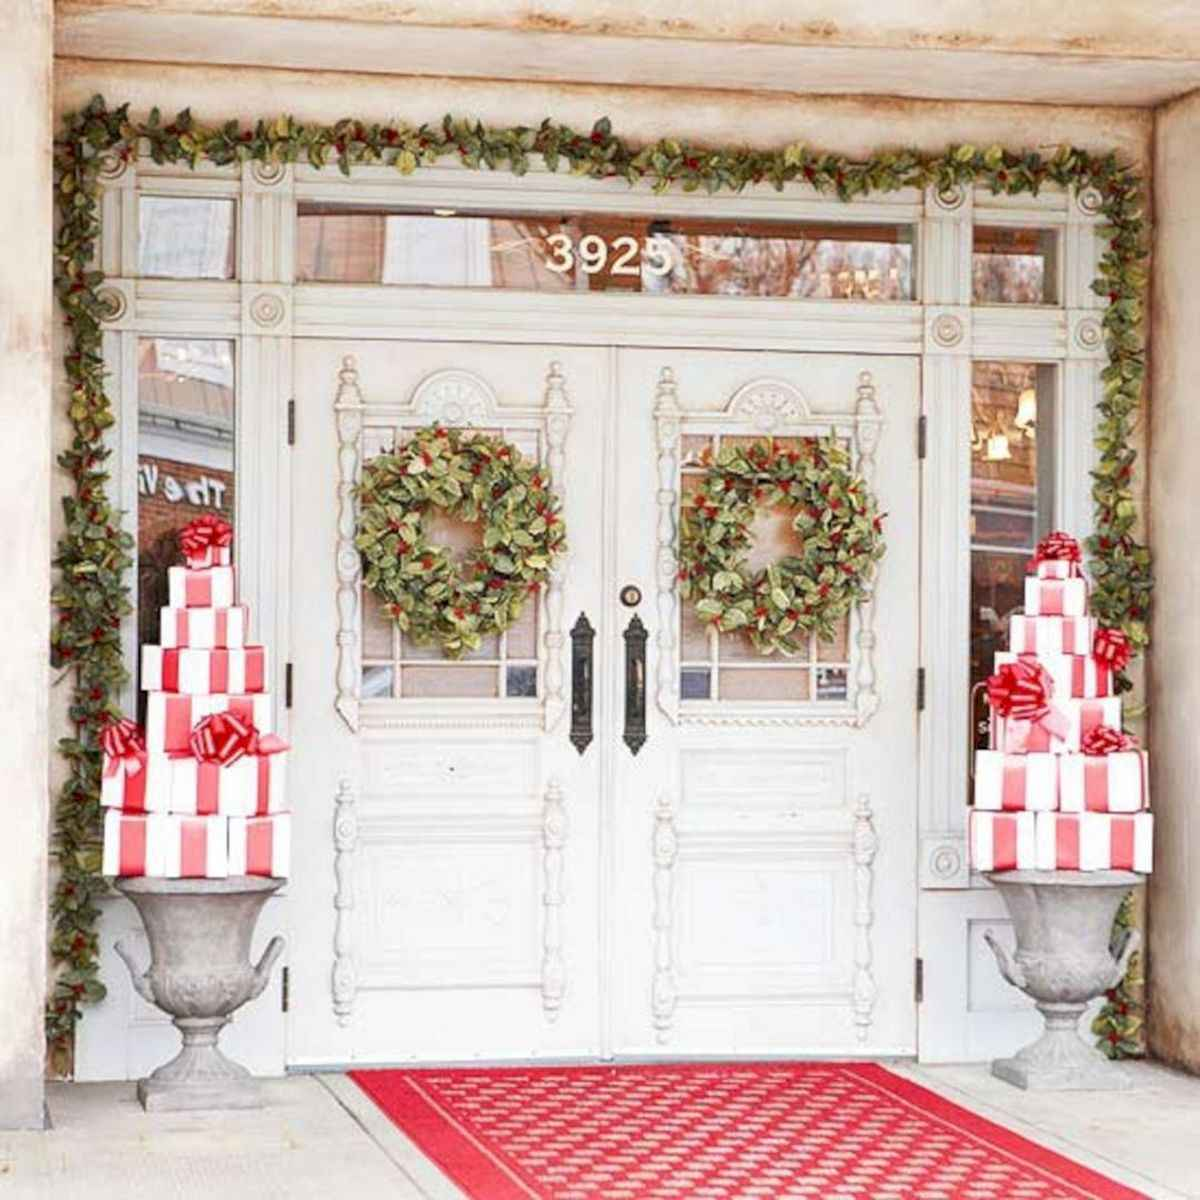 50 Awesome Christmas Front Porch Decor Ideas And Design (25) & 50 Awesome Christmas Front Porch Decor Ideas And Design (25 ...